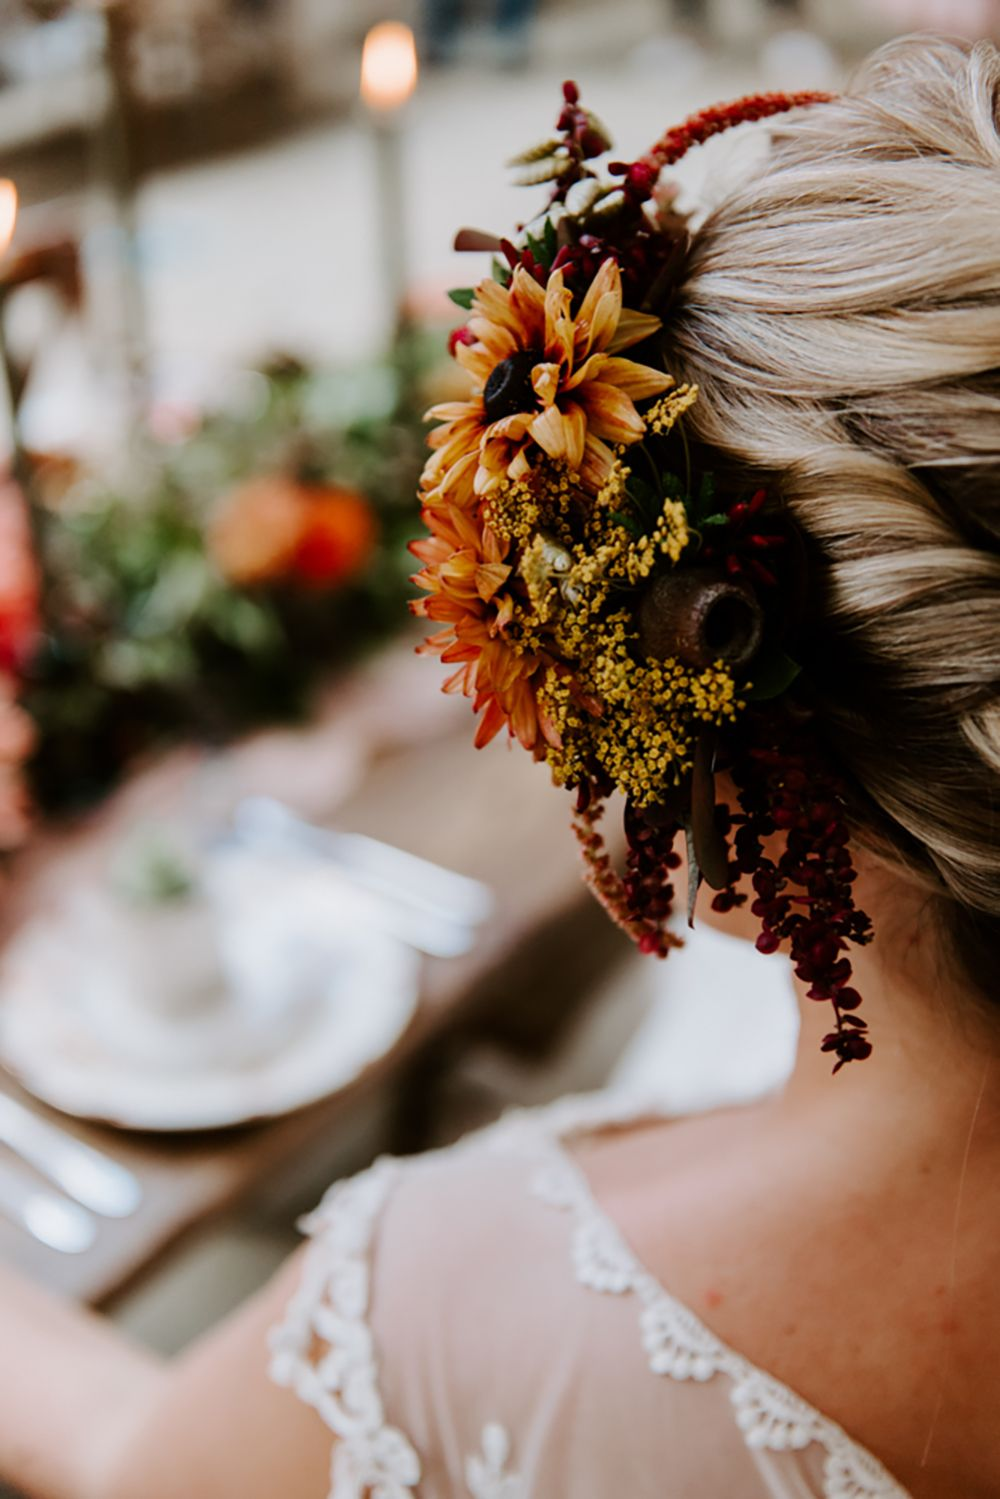 Ethical Wedding Ideas in Incredible Autumnal Style #bridalhairflowers